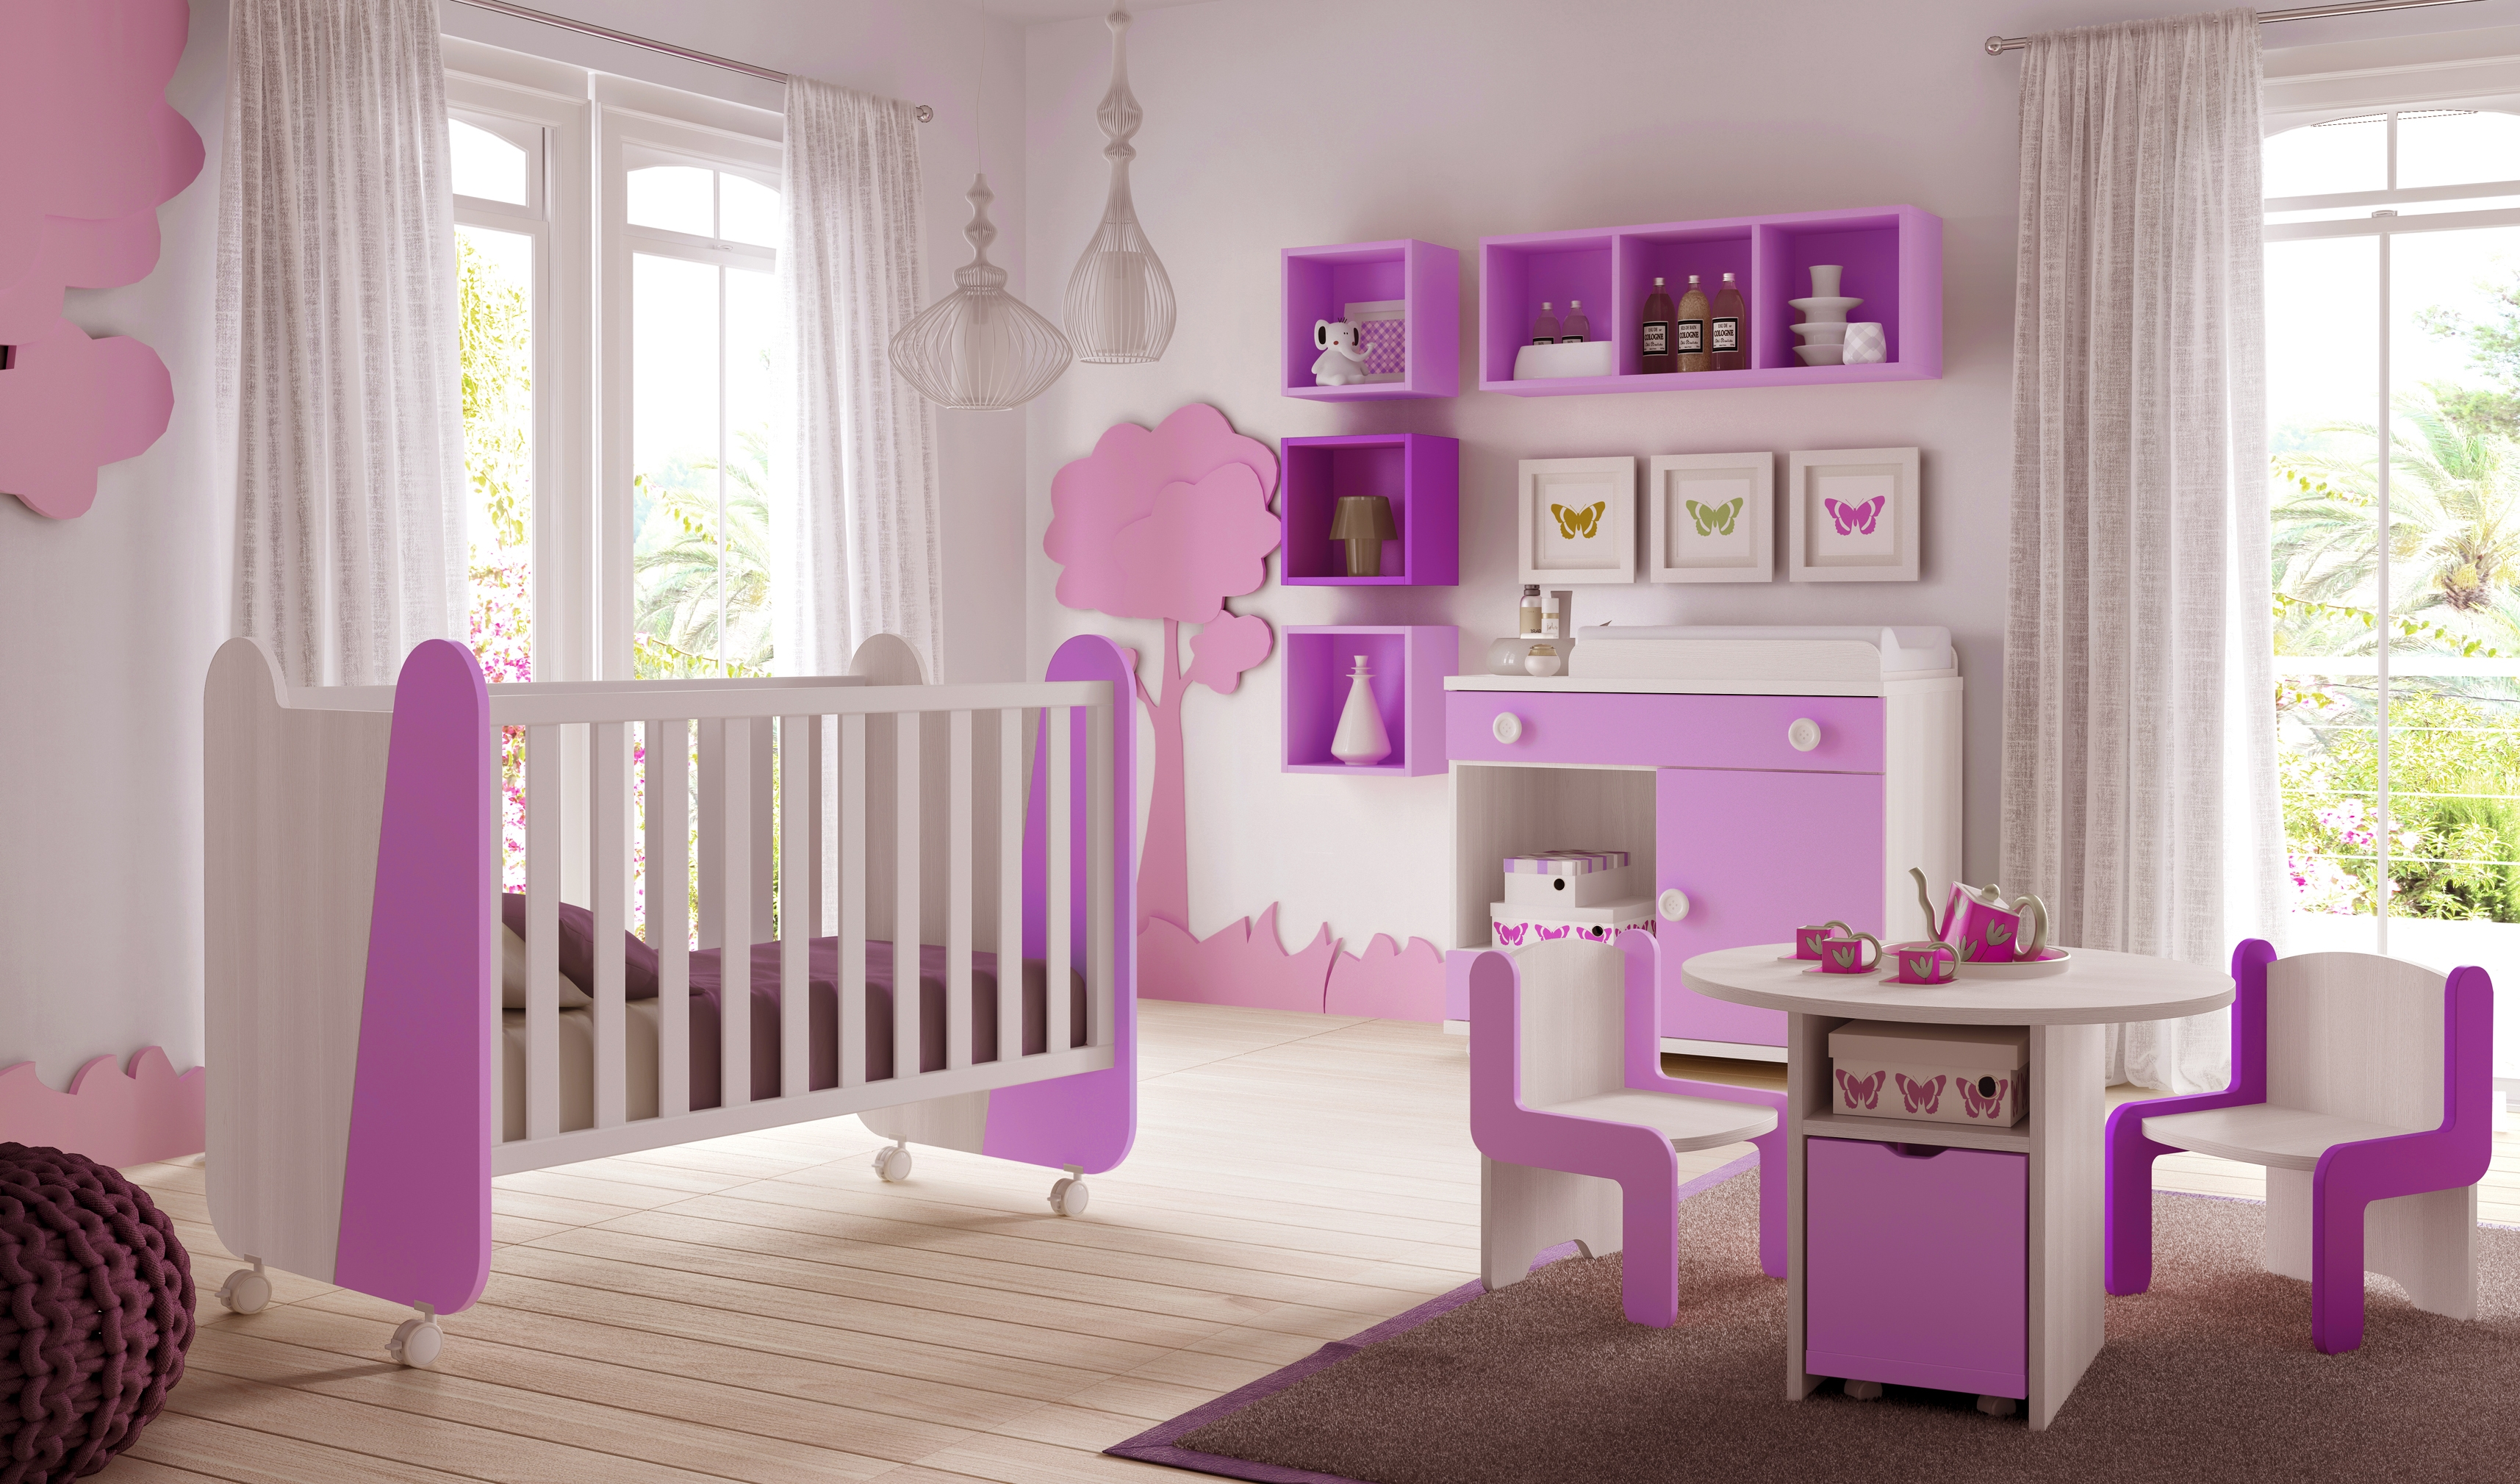 Chambre de b b fille avec lit design et color e glicerio for Photo de chambre de bebe fille